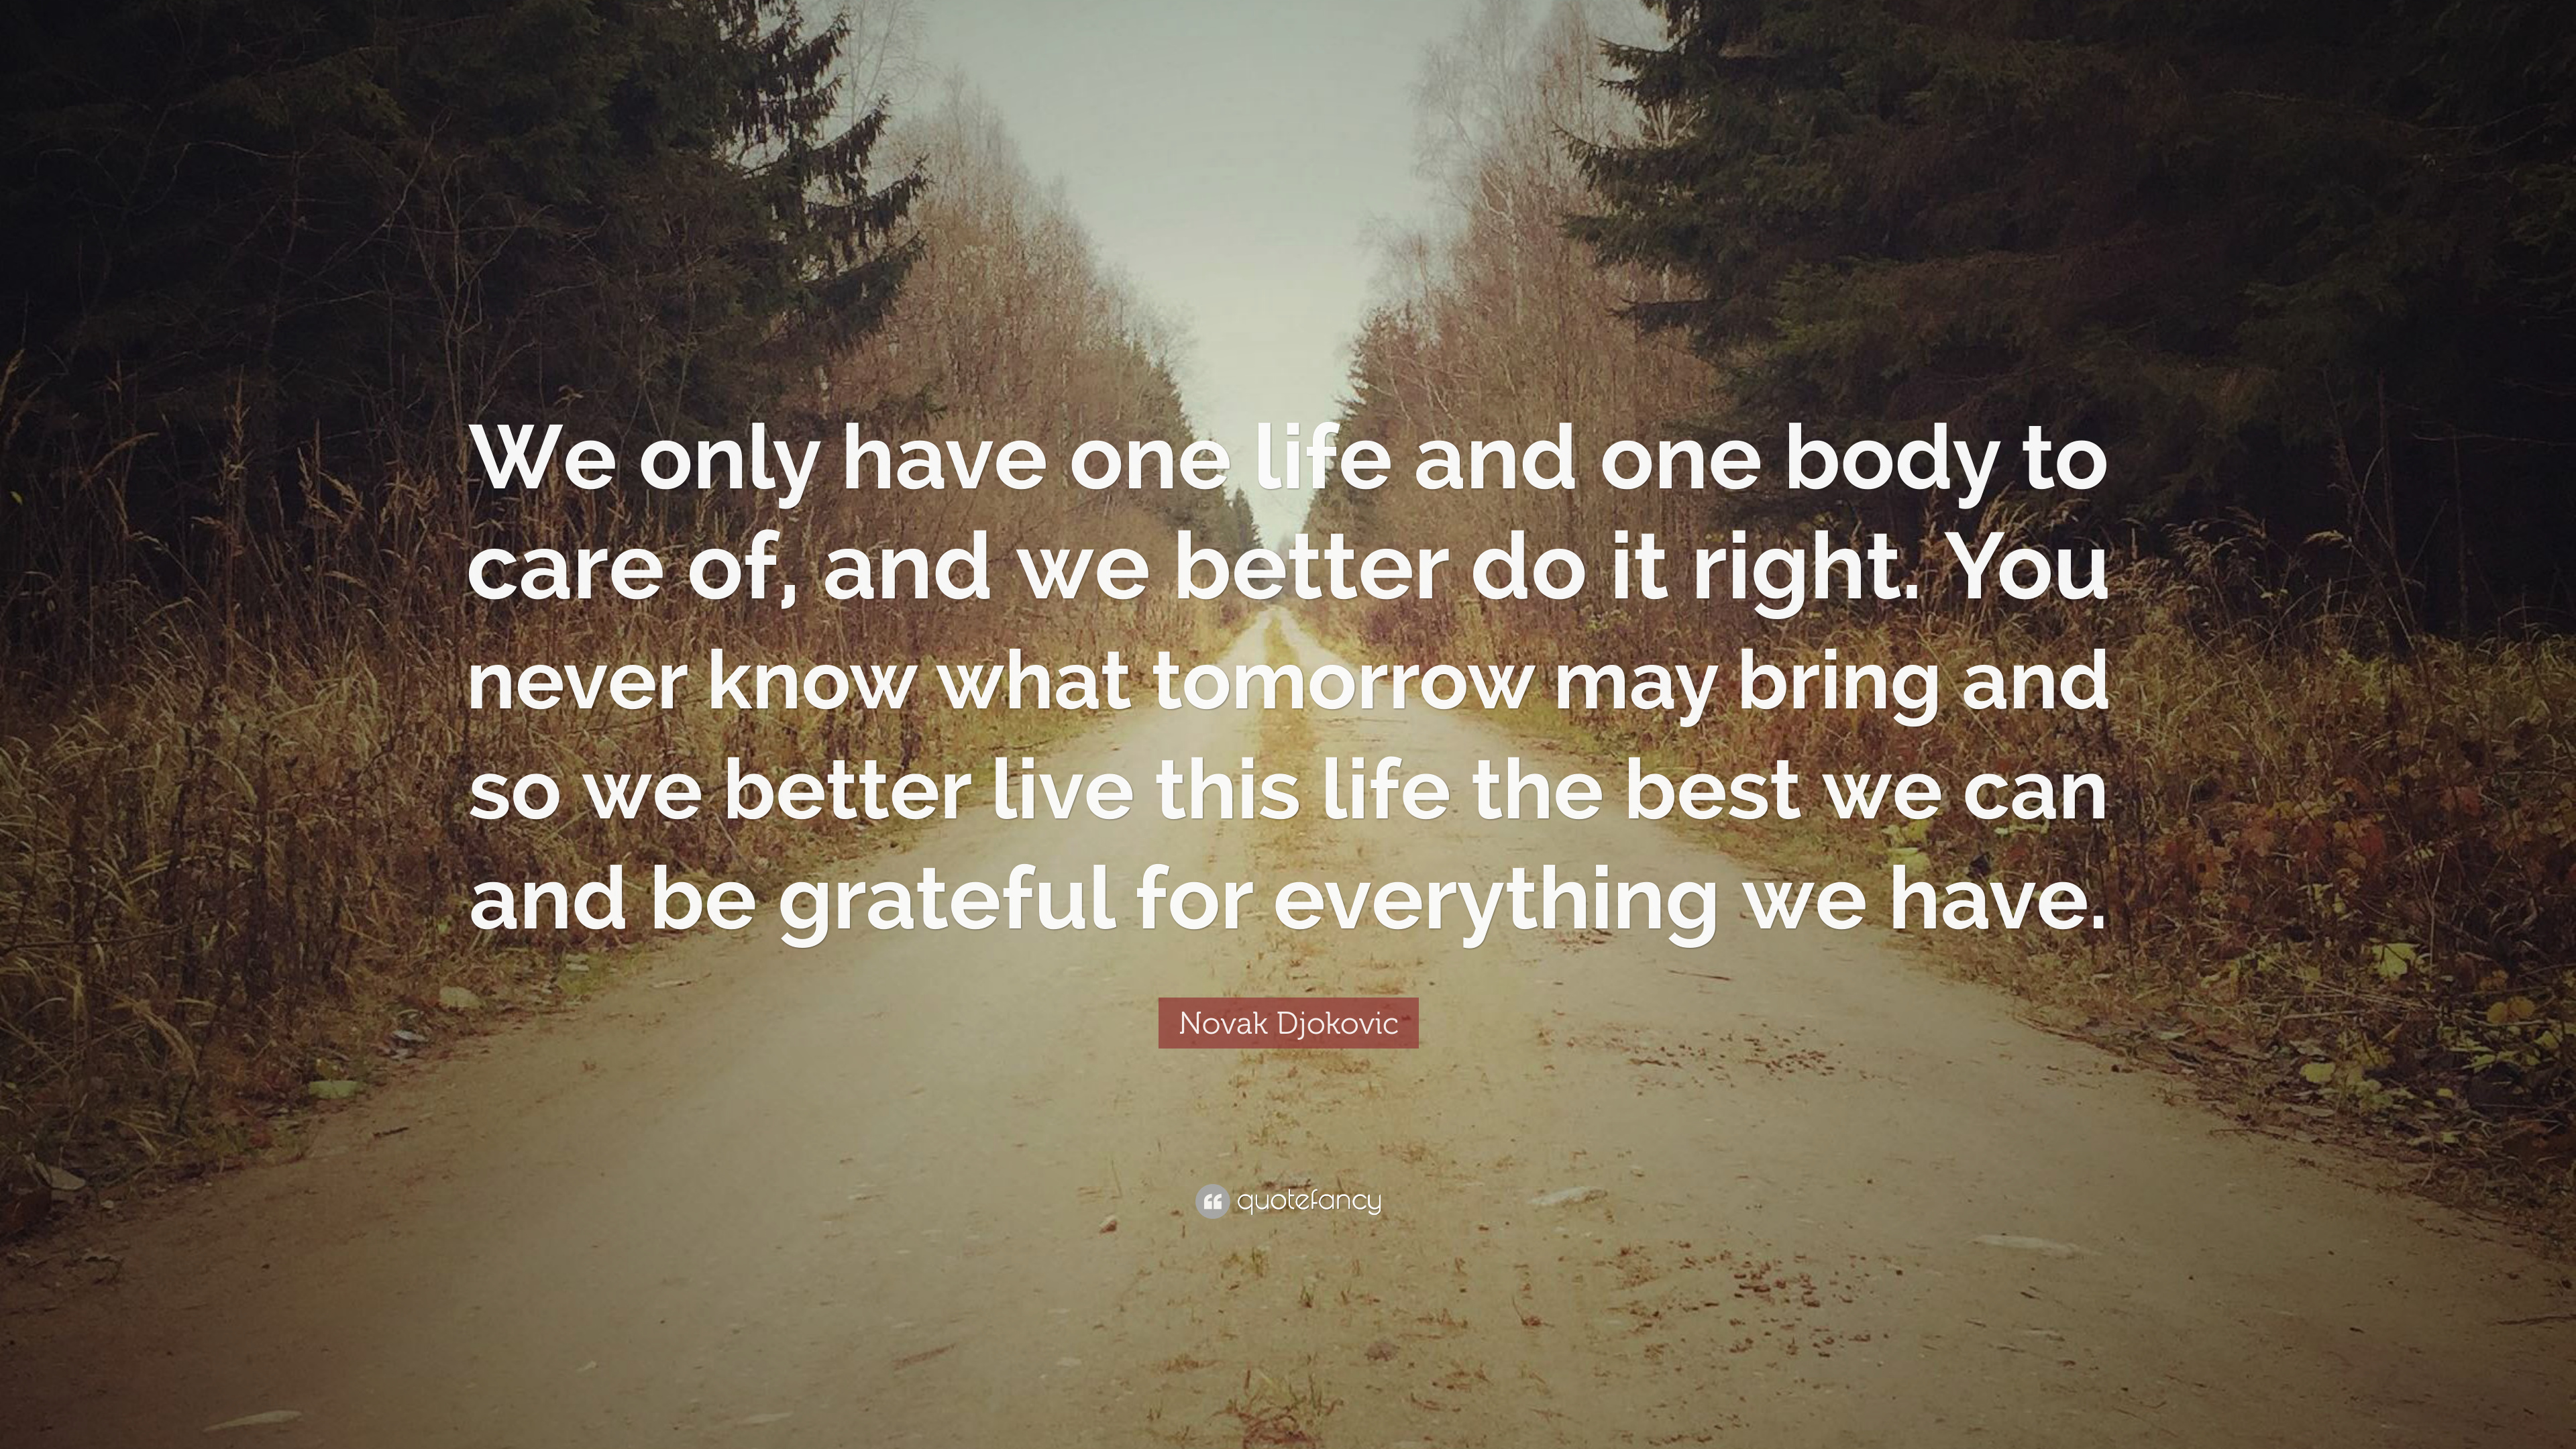 novak djokovic quote we only have one life and one body to care of